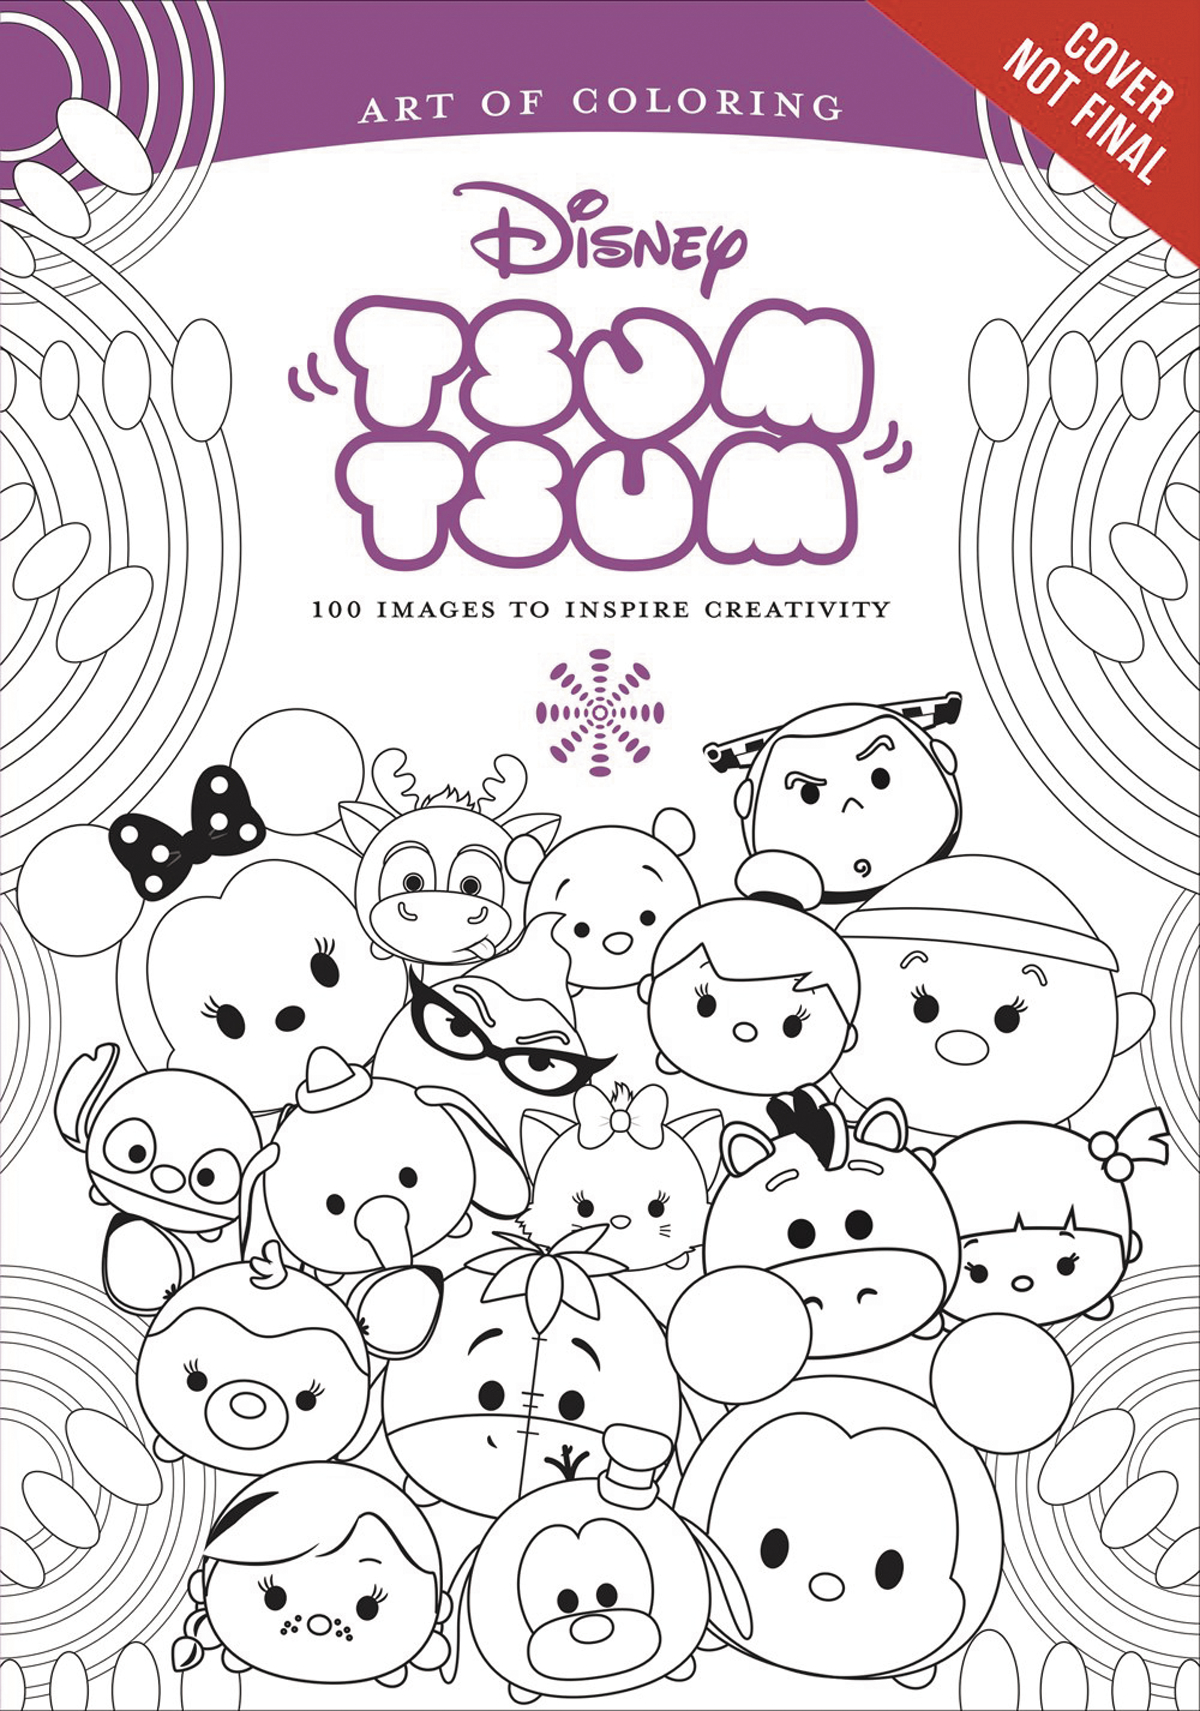 NOV162117 - ART OF COLORING TSUM TSUM SC - Previews World